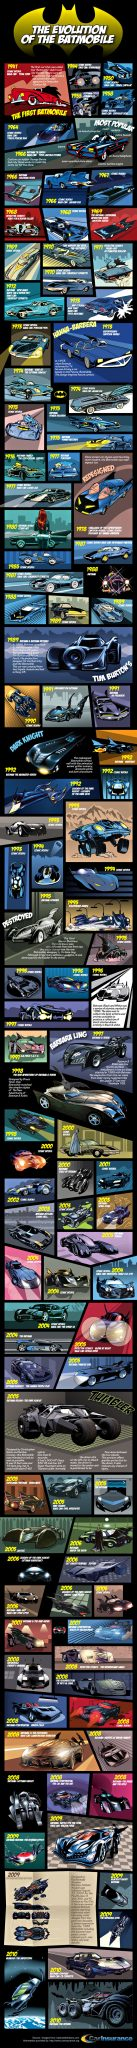 List of Batmobiles Infographic